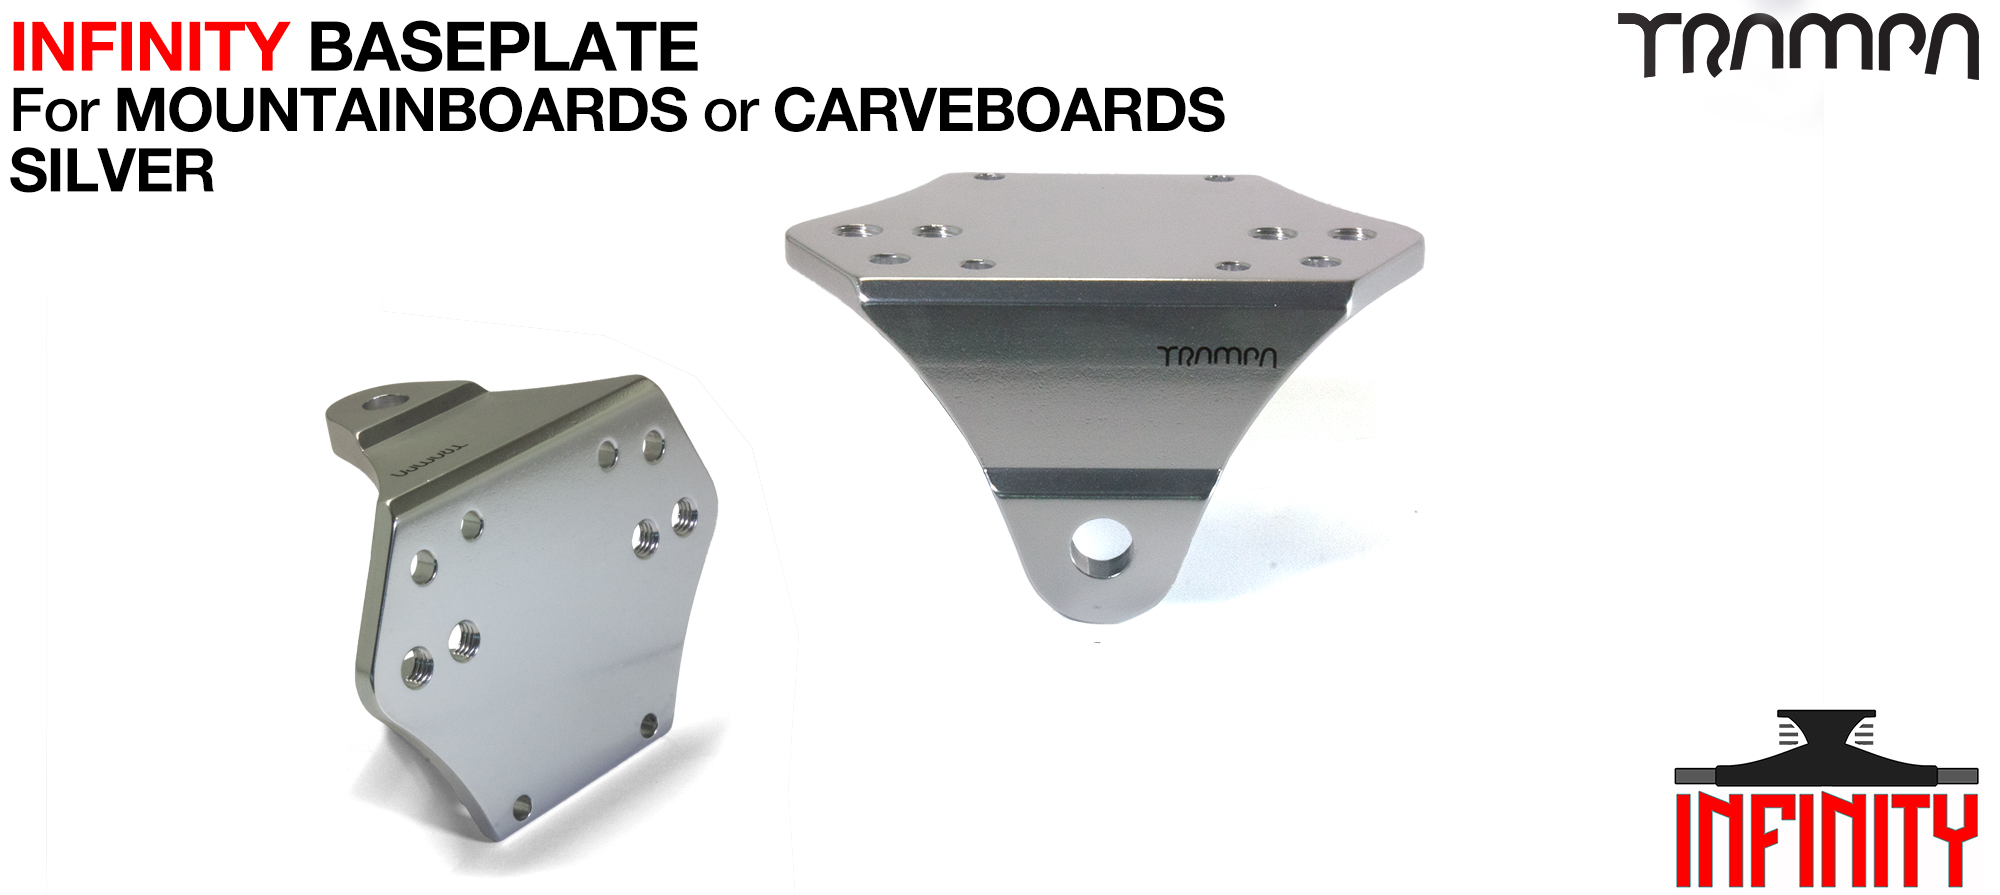 INFINITY Baseplate Silver - Fits ATB & CARVE Extruded T6 Aluminum Anodised & CNC precision Milled